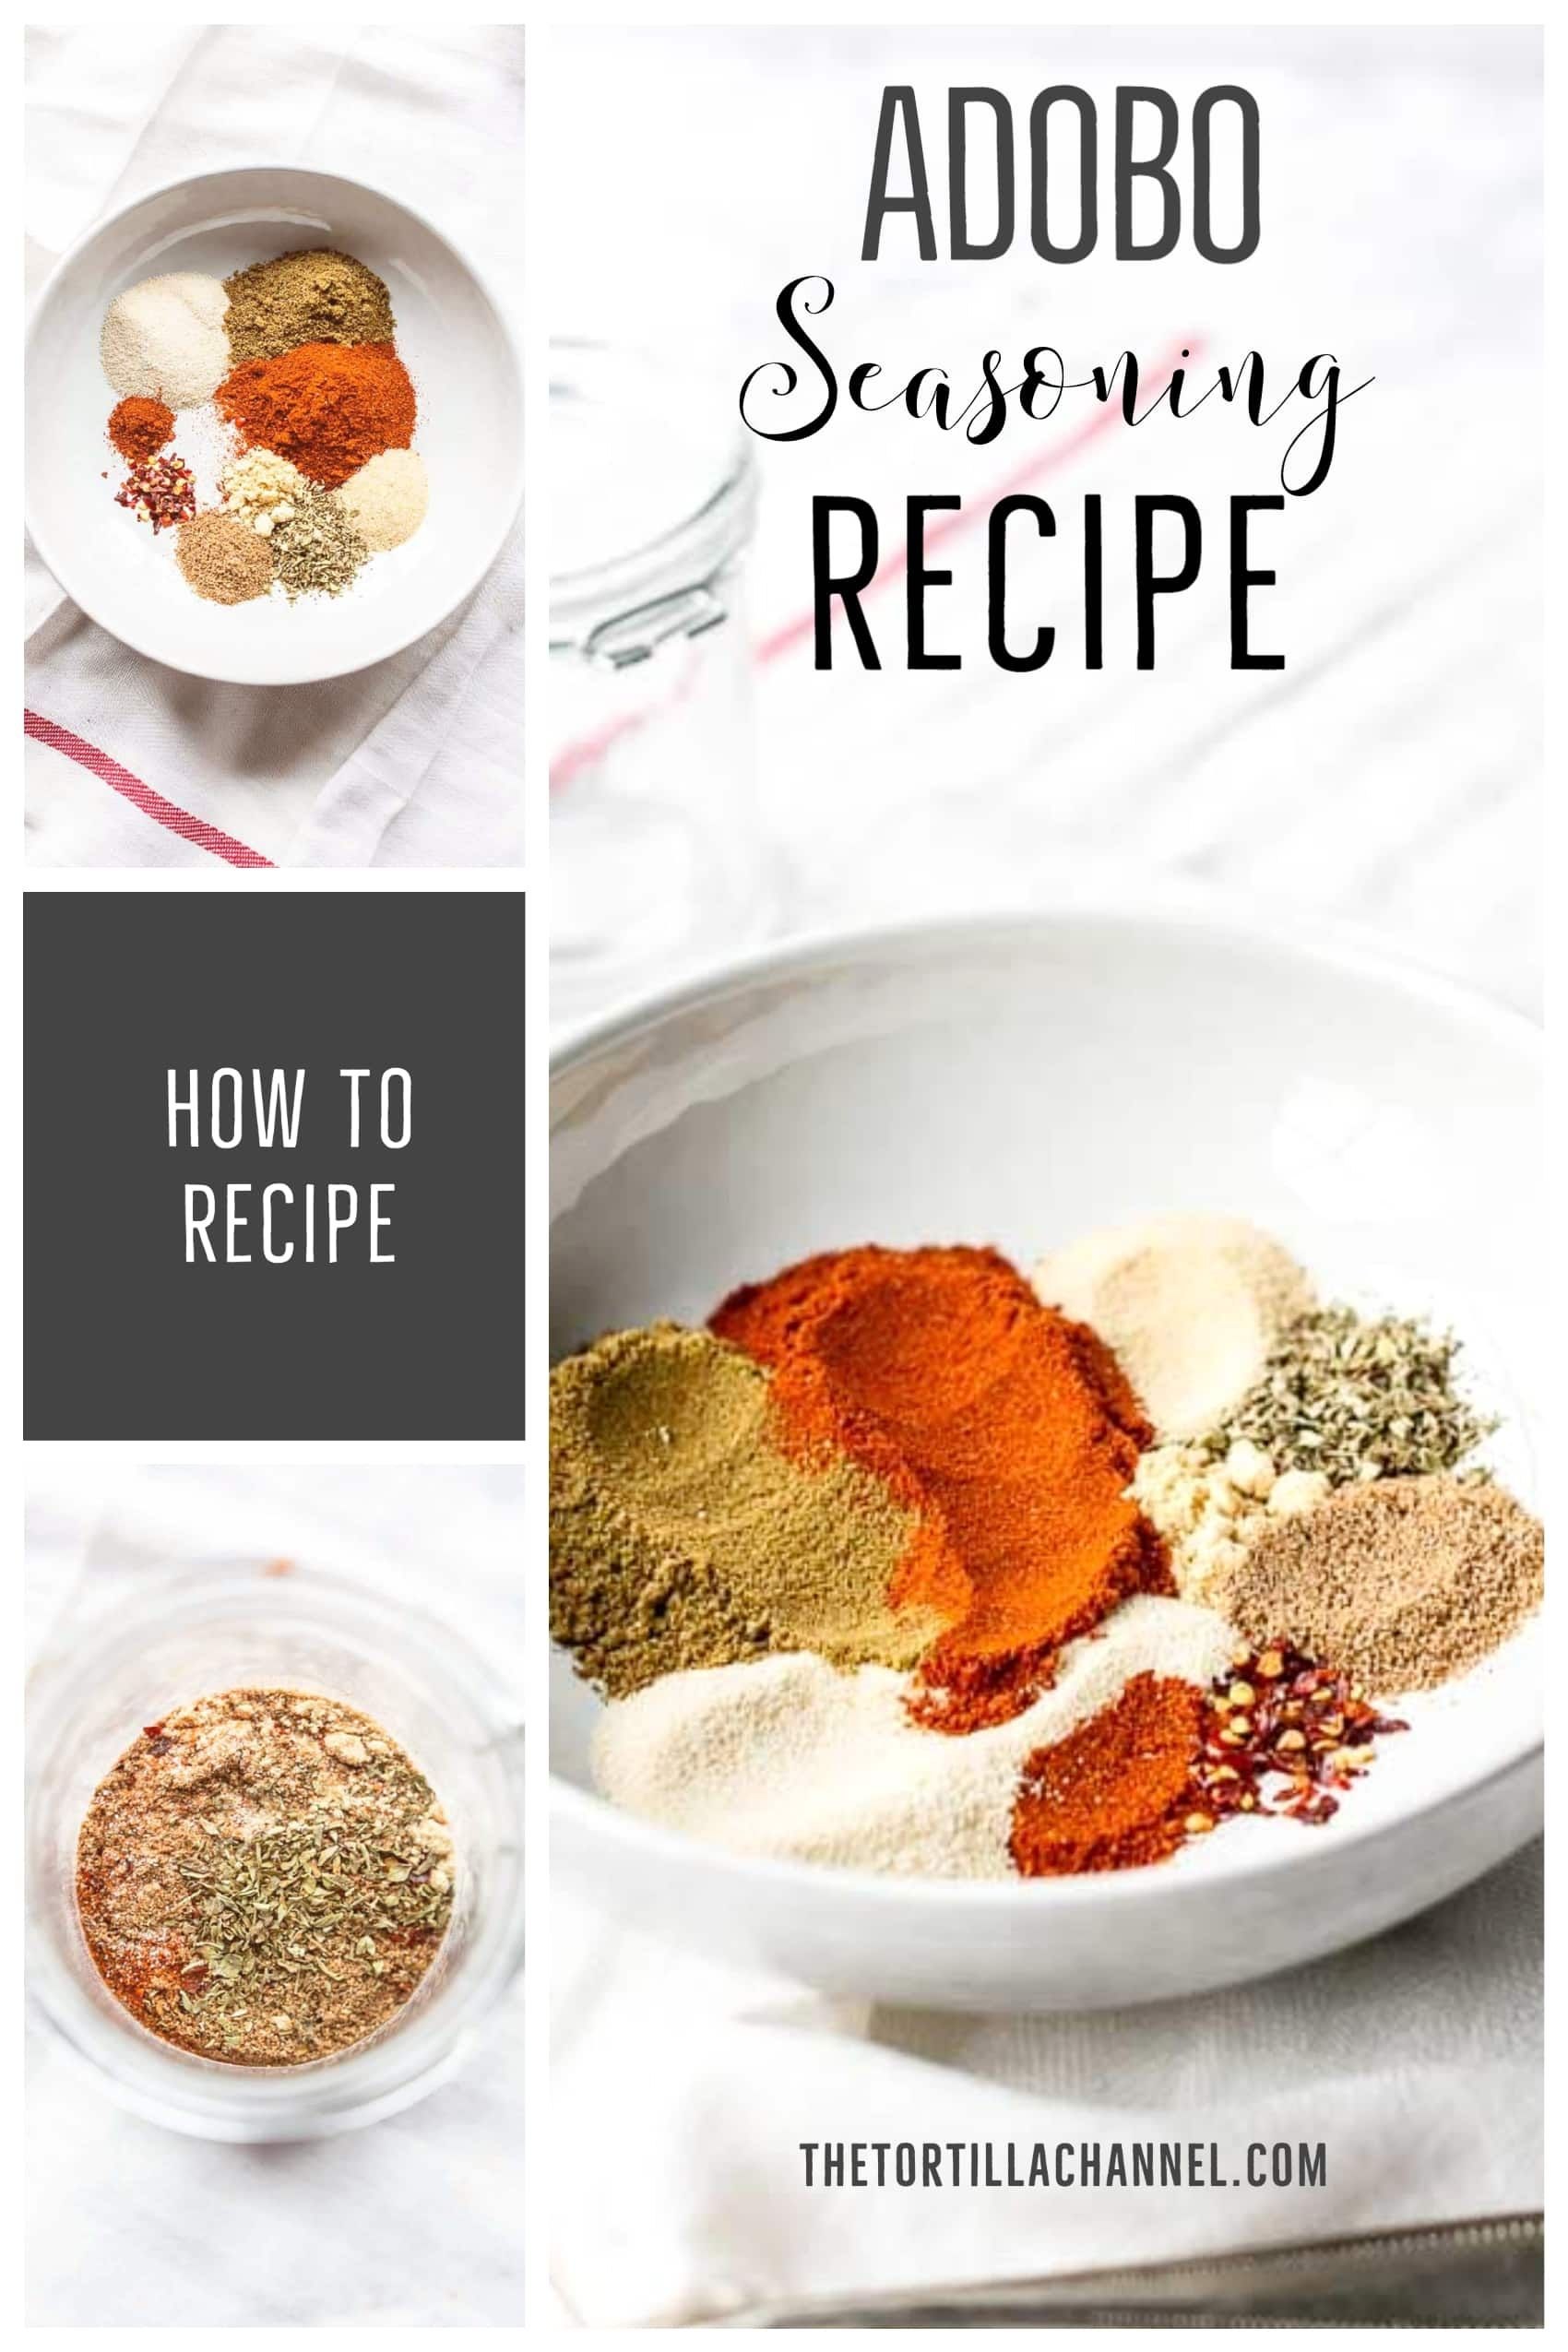 How To Make Adobo Seasoning At Home The Tortilla Channel Recipe In 2021 Homemade Spices Seasoning Recipes Fajita Spices